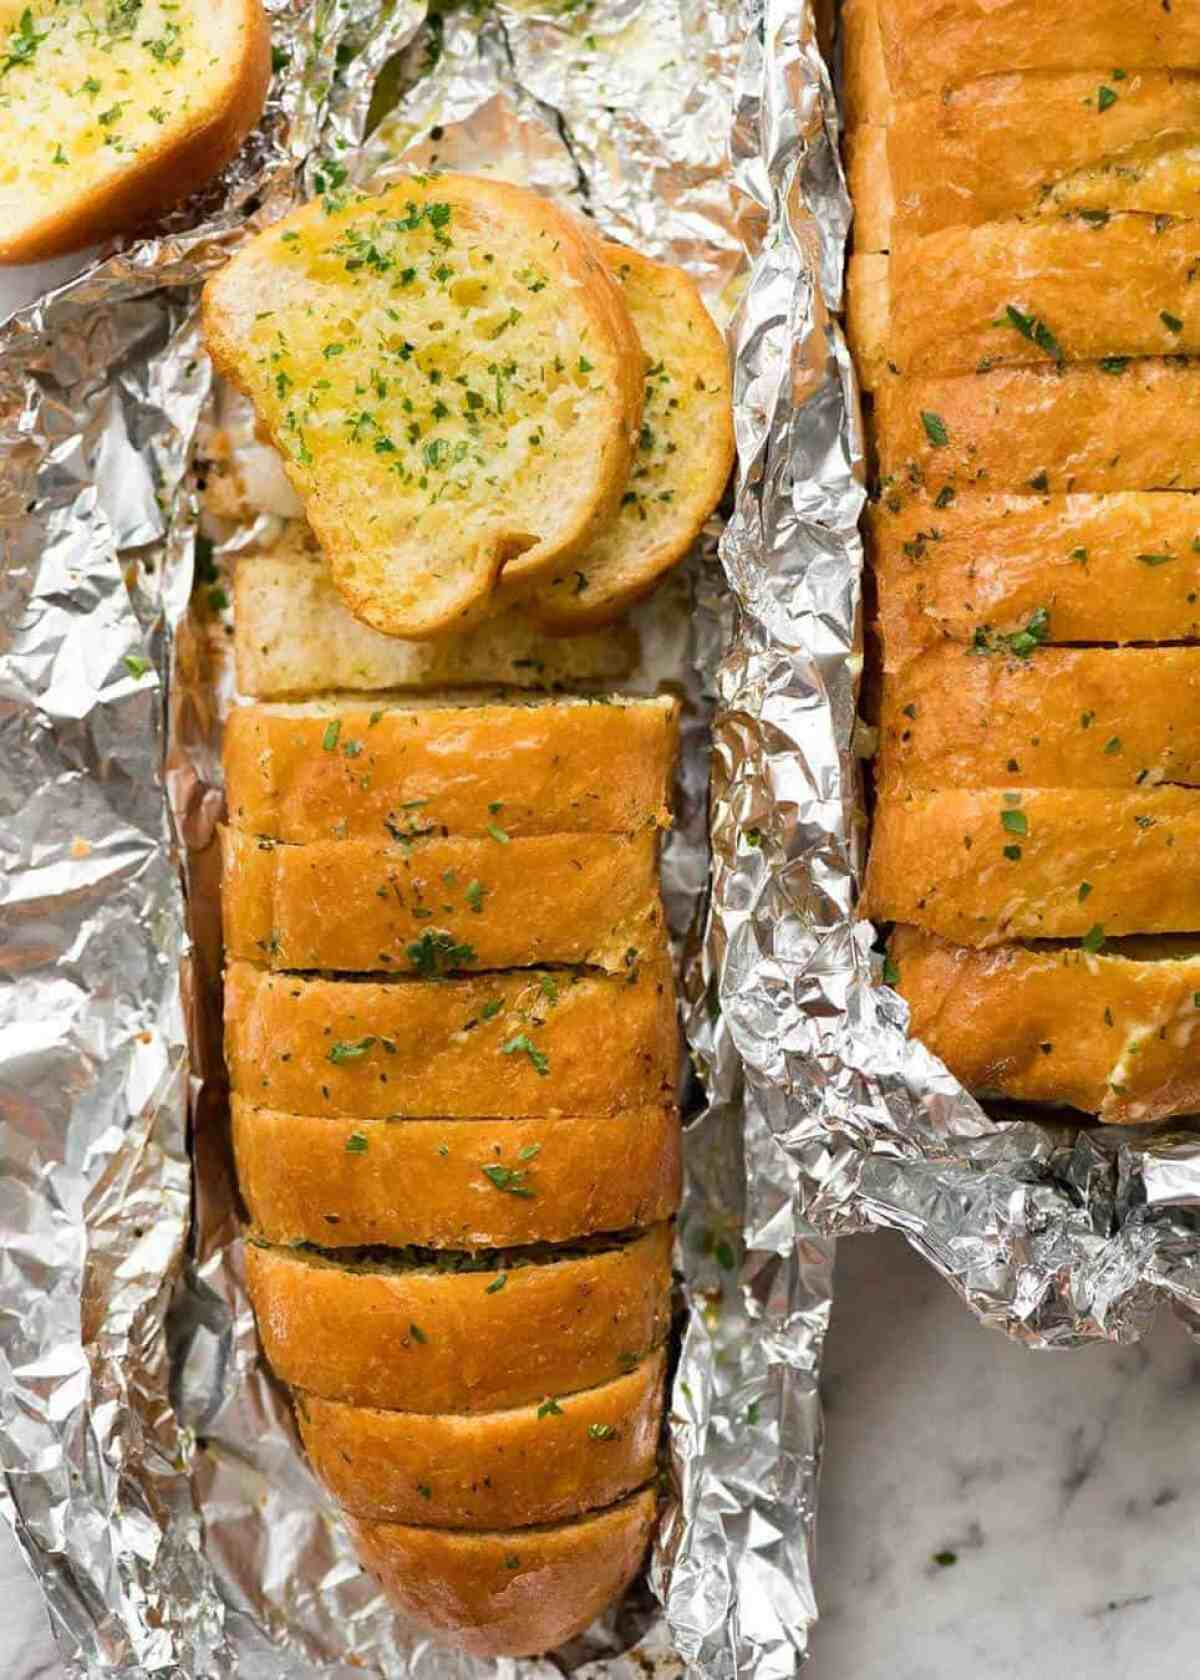 Better than Pizza Hut! For a truly religious Garlic Bread experience, skip the artisan bread and use a basic French stick. And no skimping on butter! www.recipetineats.com